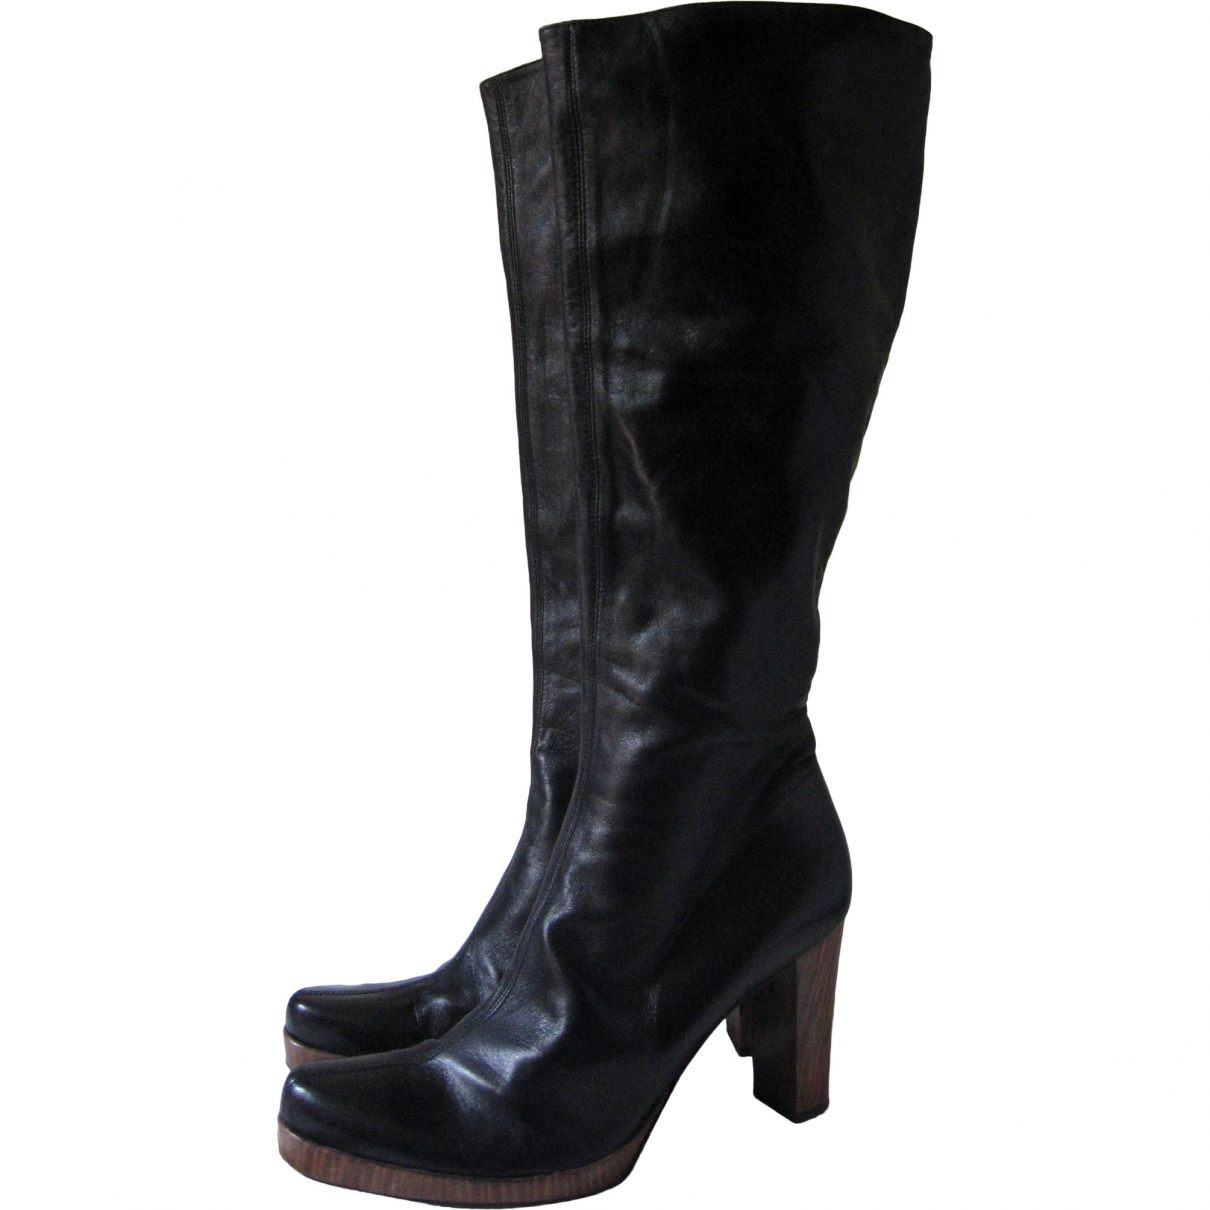 Pollini \N Black Leather Boots for Women 40 EU